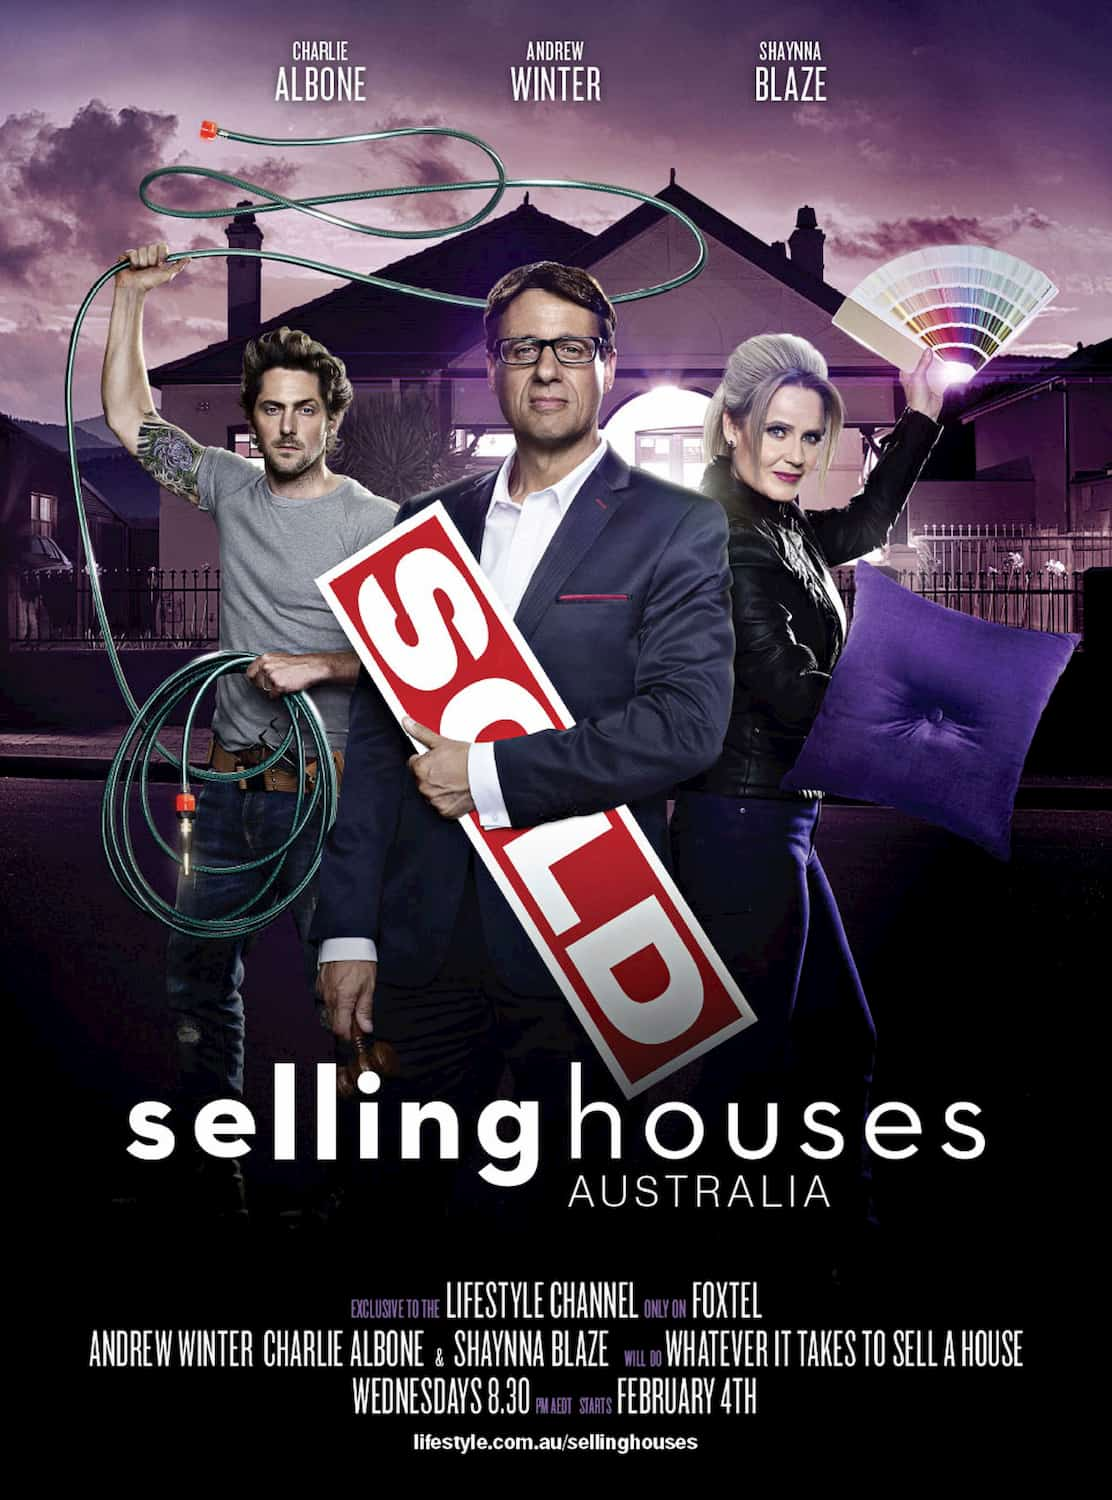 image from Selling Houses Australia